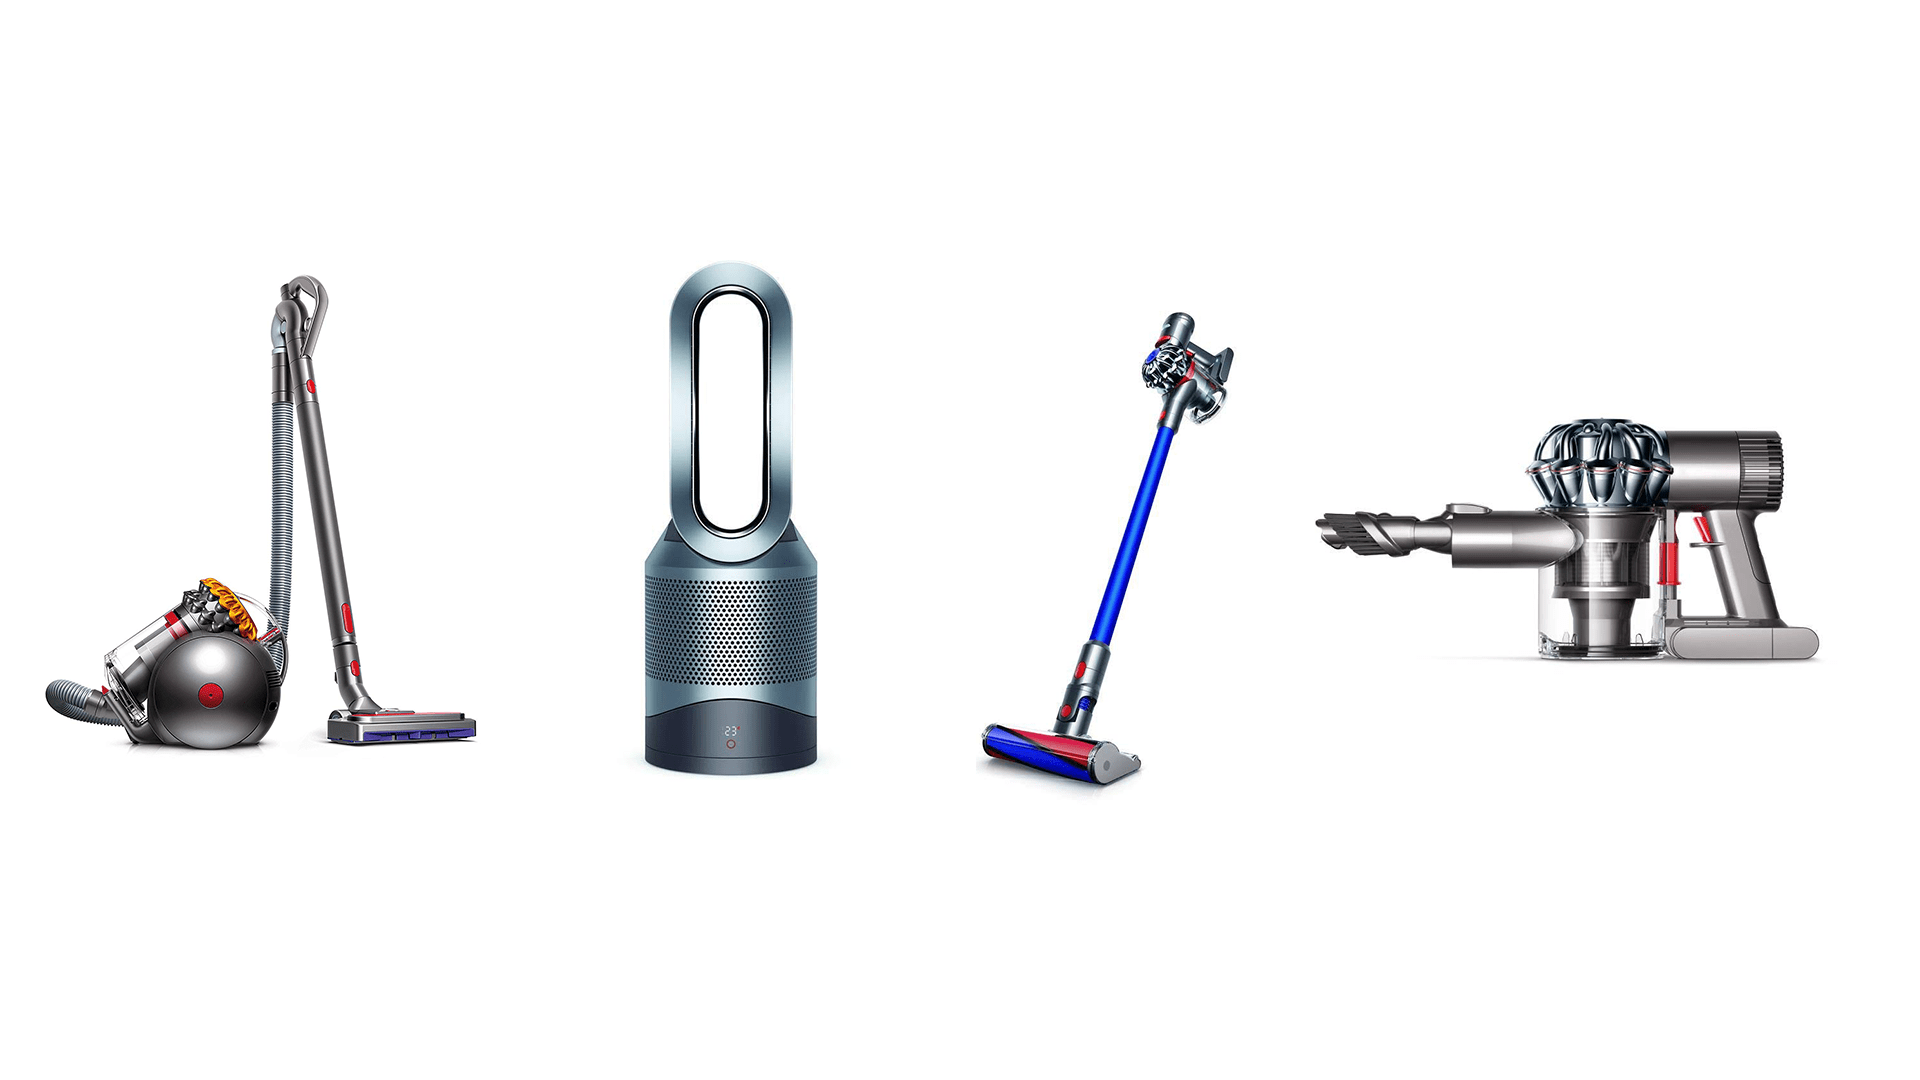 🔥 Déstockage : aspirateurs Dyson à partir de 129 euros sur Amazon